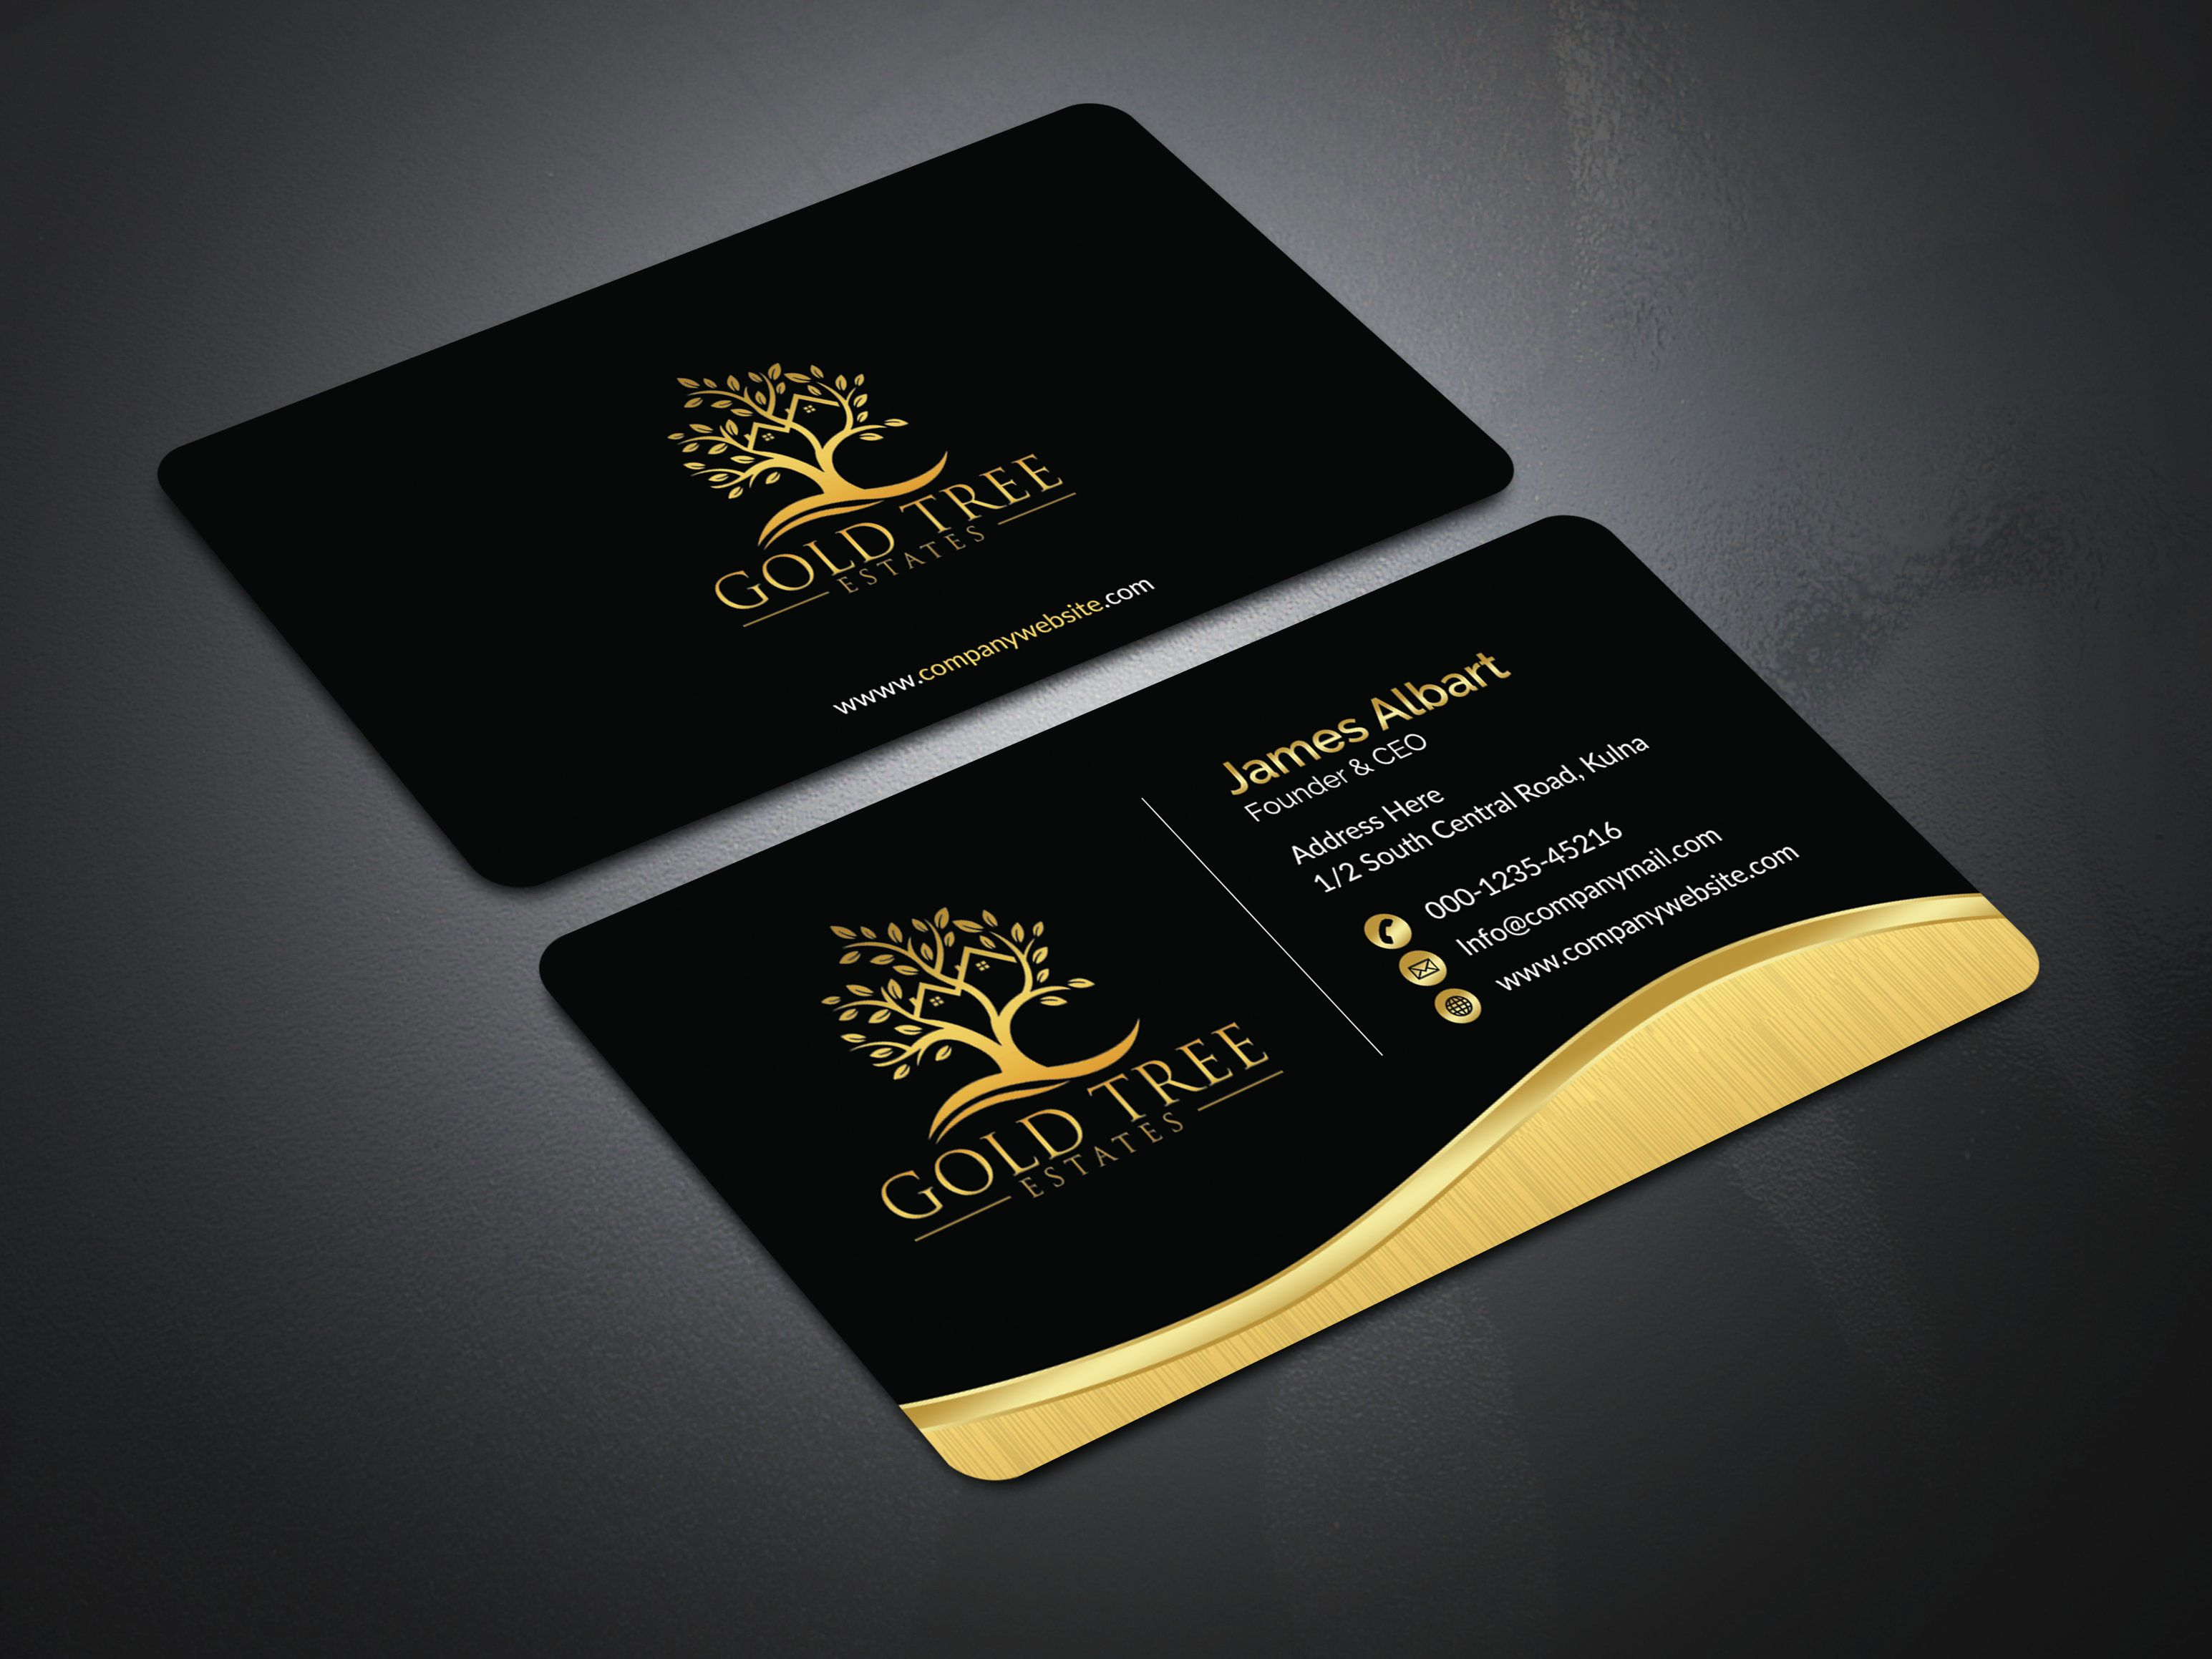 Design Pack I Will Design 4 Professional Business Card Concept Within 24 Hour For 5 On Fiverr Com Modern Business Cards Professional Business Cards Unique Business Cards